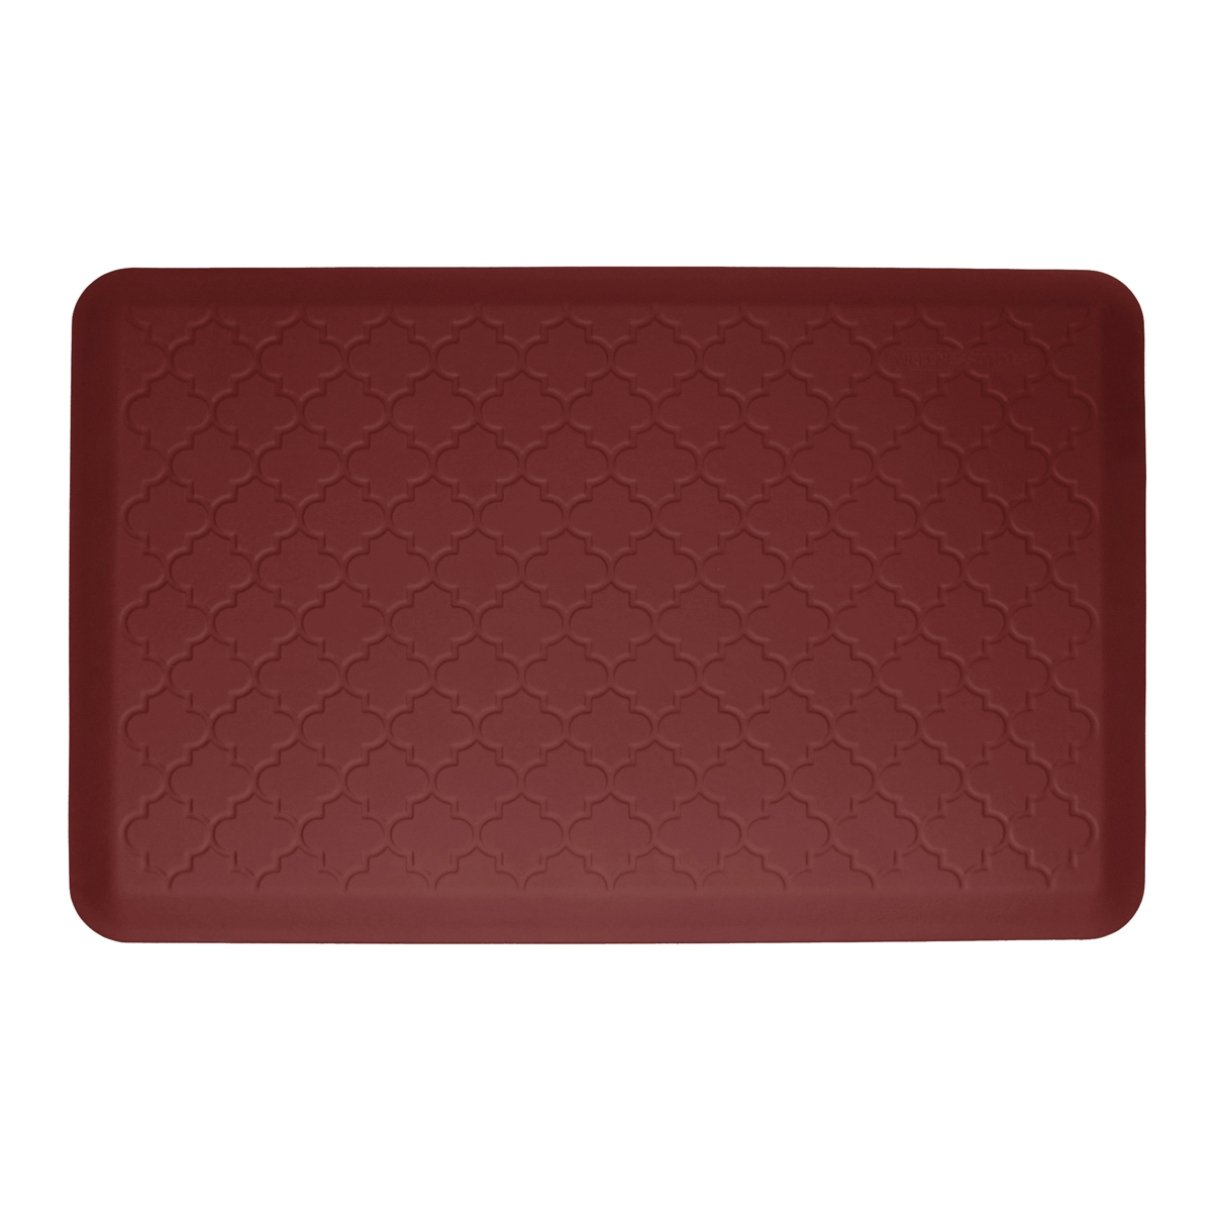 elite kitchen mat mats org reviews gel fatigue saccord best pro anti